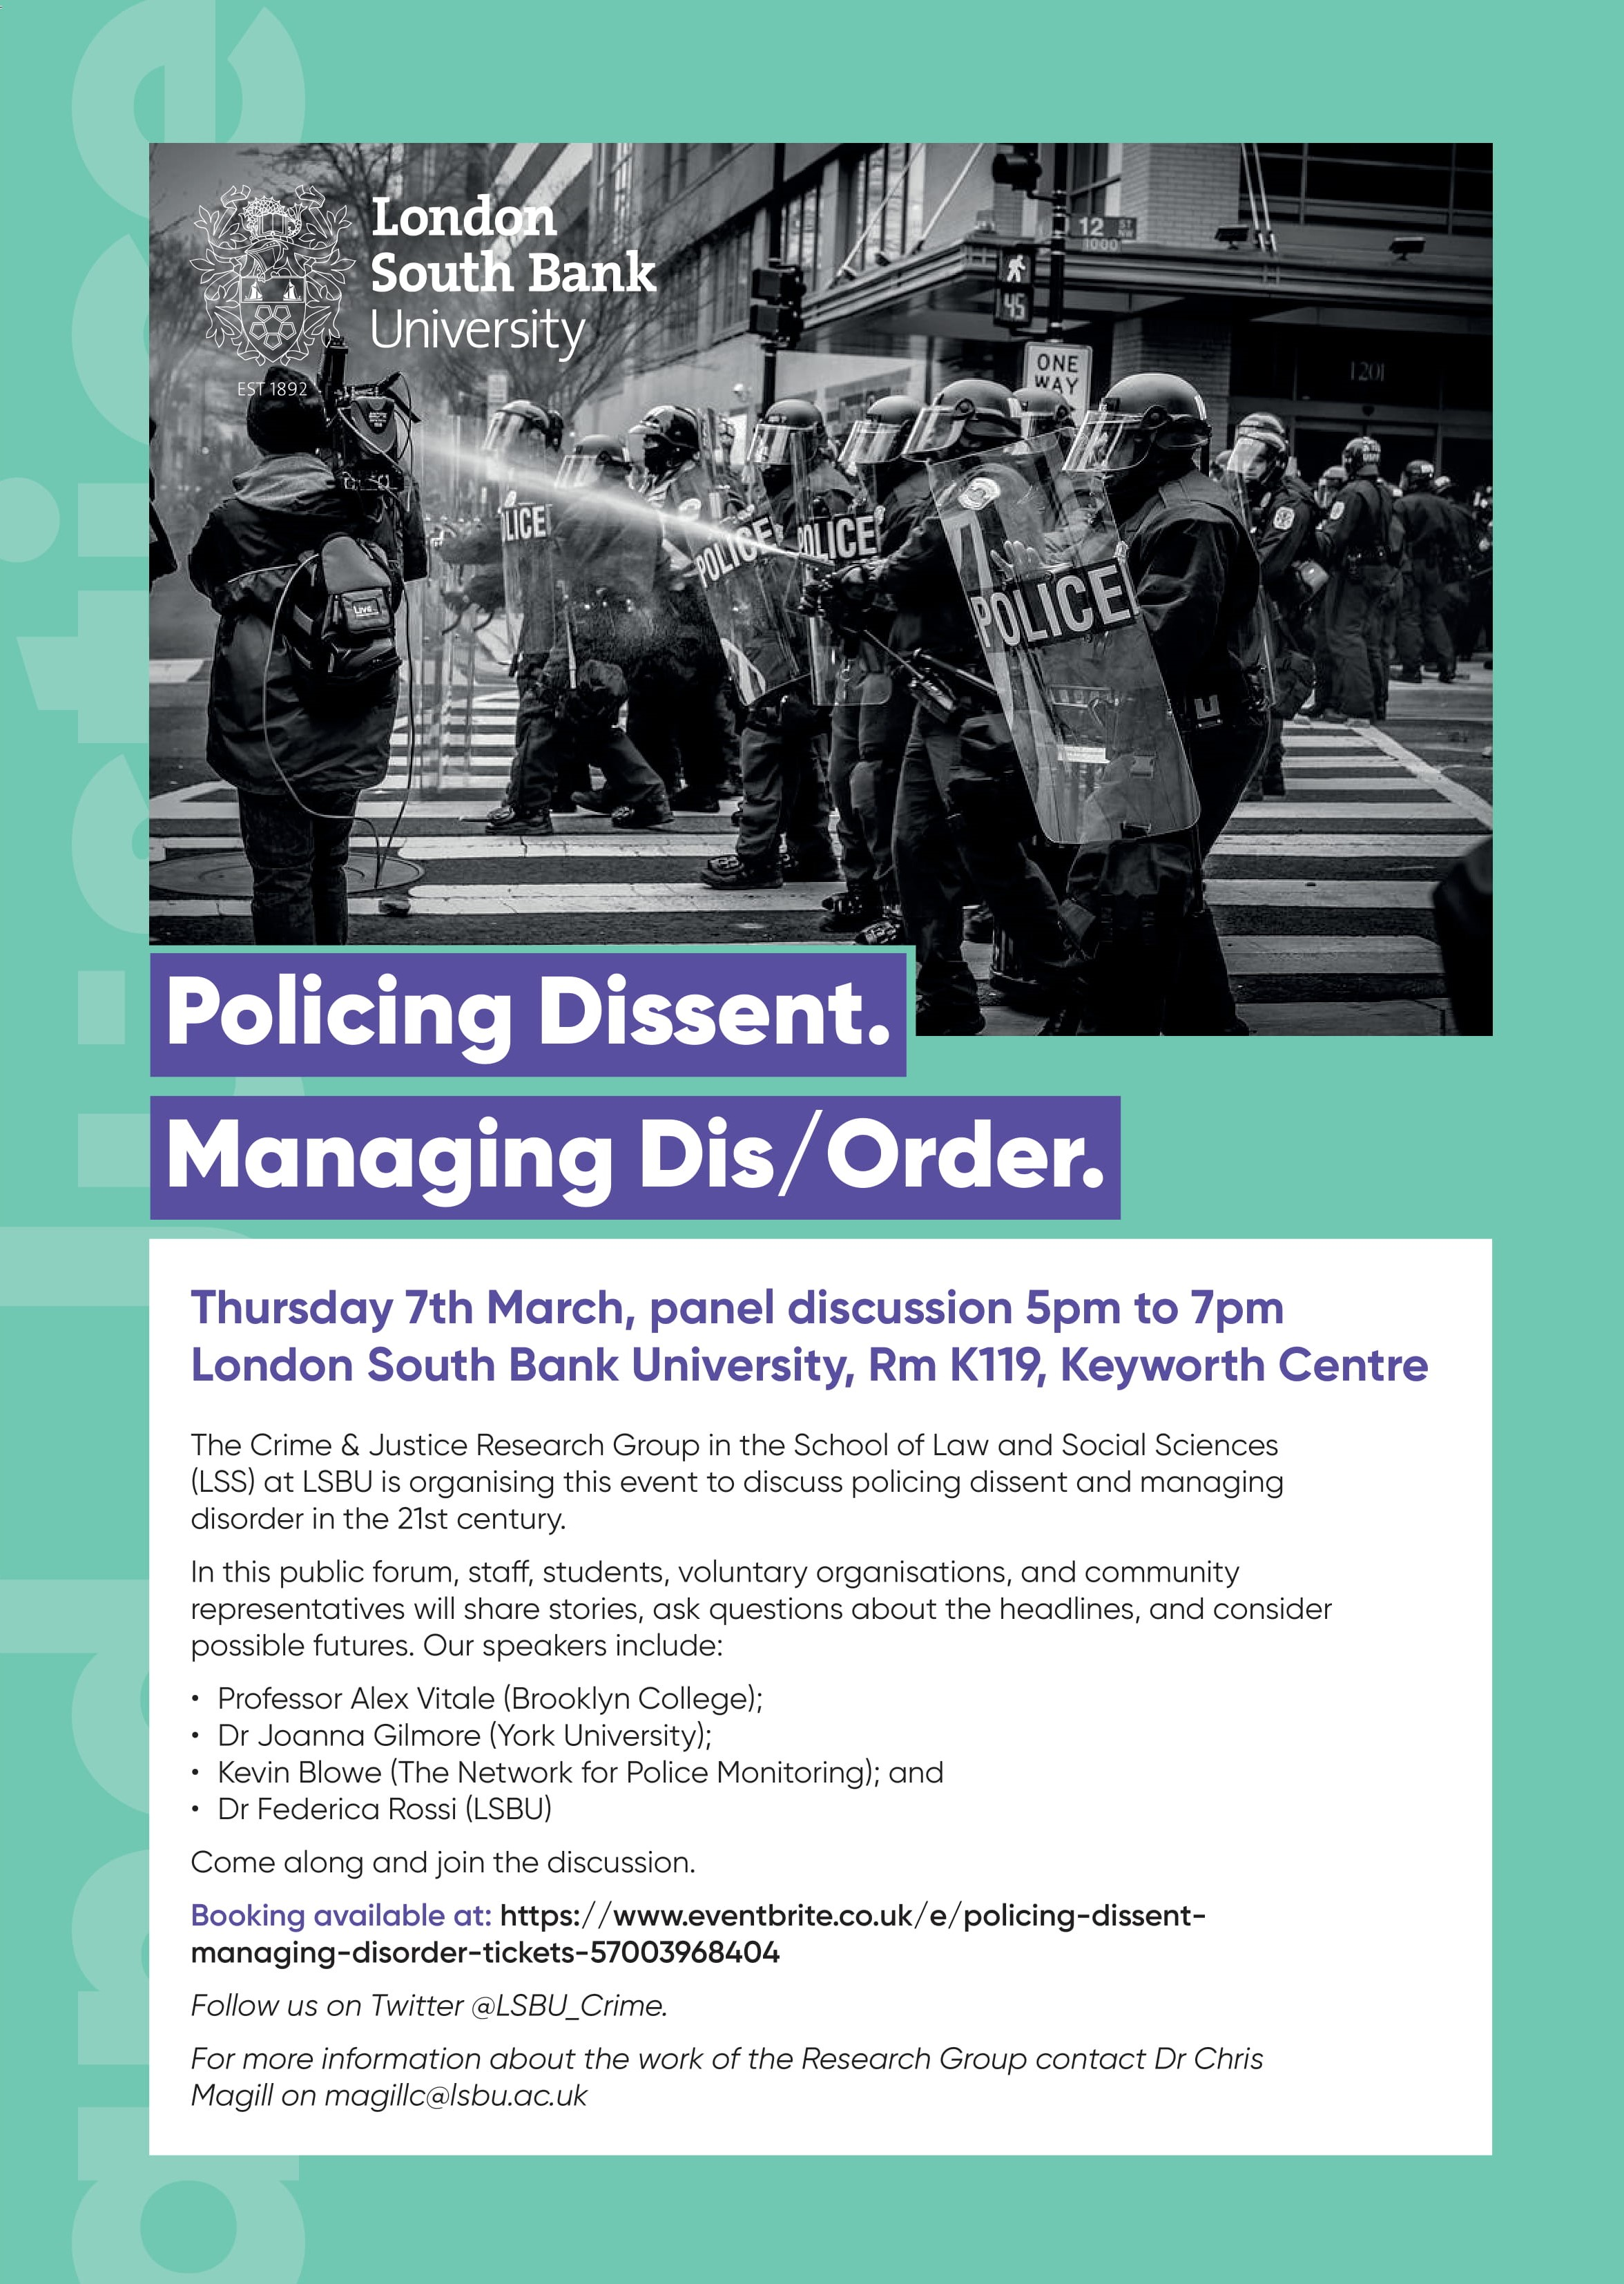 LSS-Policing dissent poster